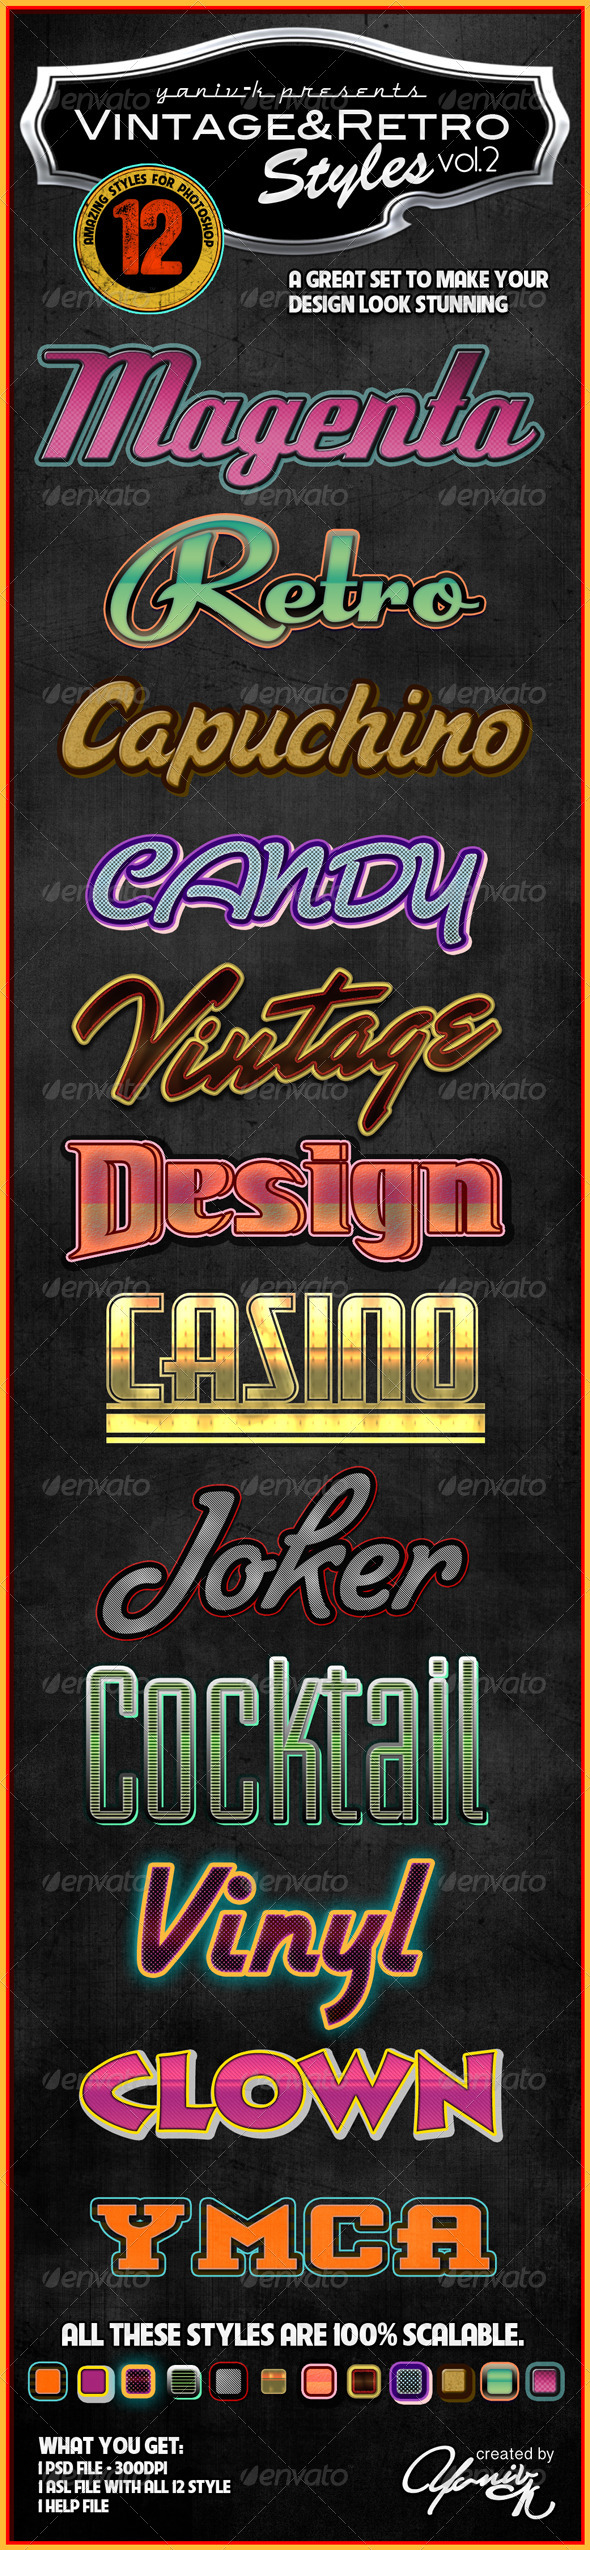 GraphicRiver Vintage Retro Photoshop Styles Vol.2 1925402